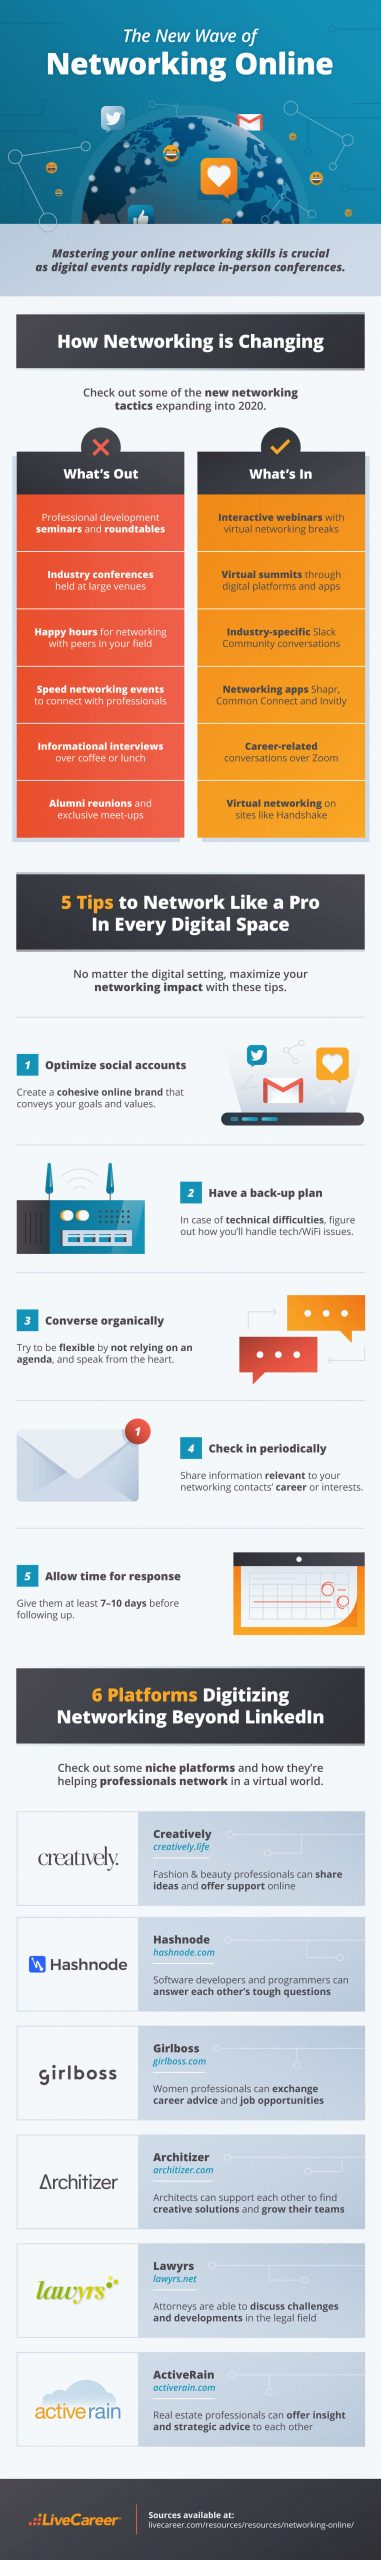 Infographic on the new wave of networking online.